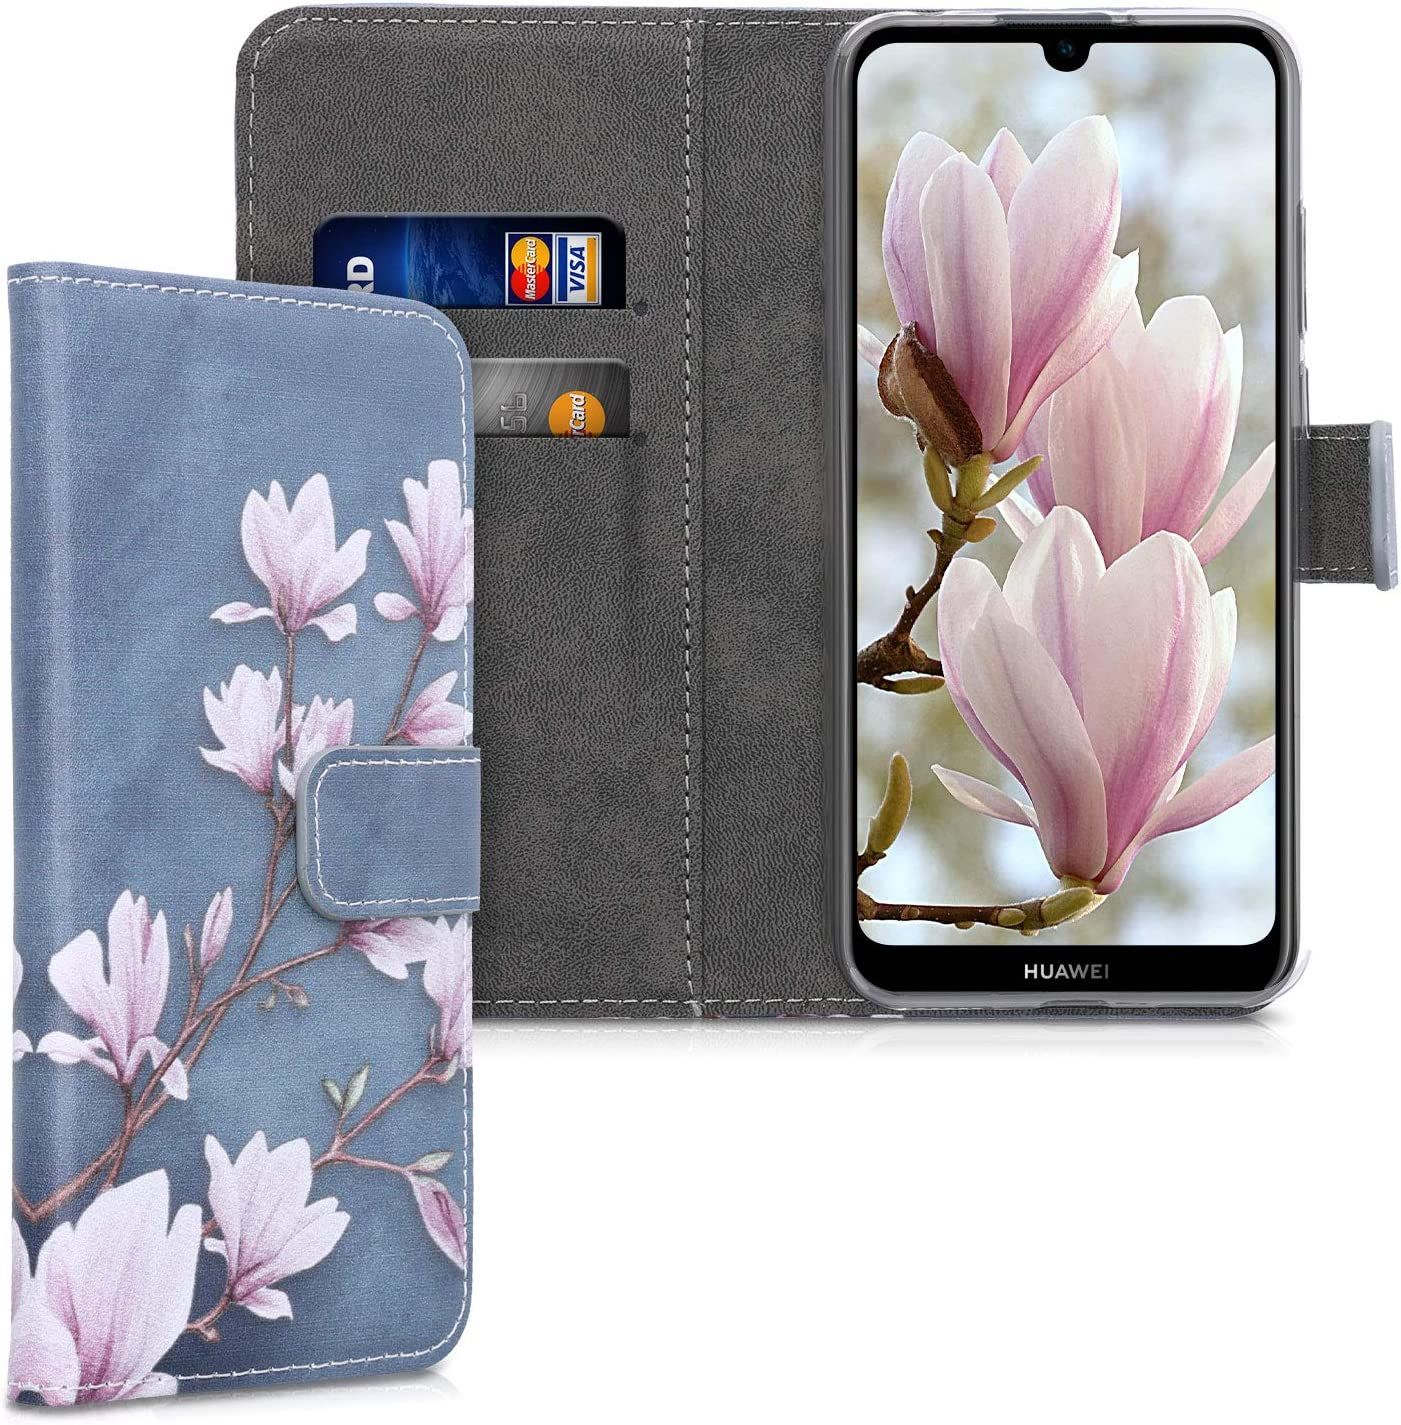 kwmobile Wallet Case Compatible with Huawei Y6s (2019) - PU Leather Flip Cover with Card Slots and Stand - Magnolias Taupe/White/Blue Grey